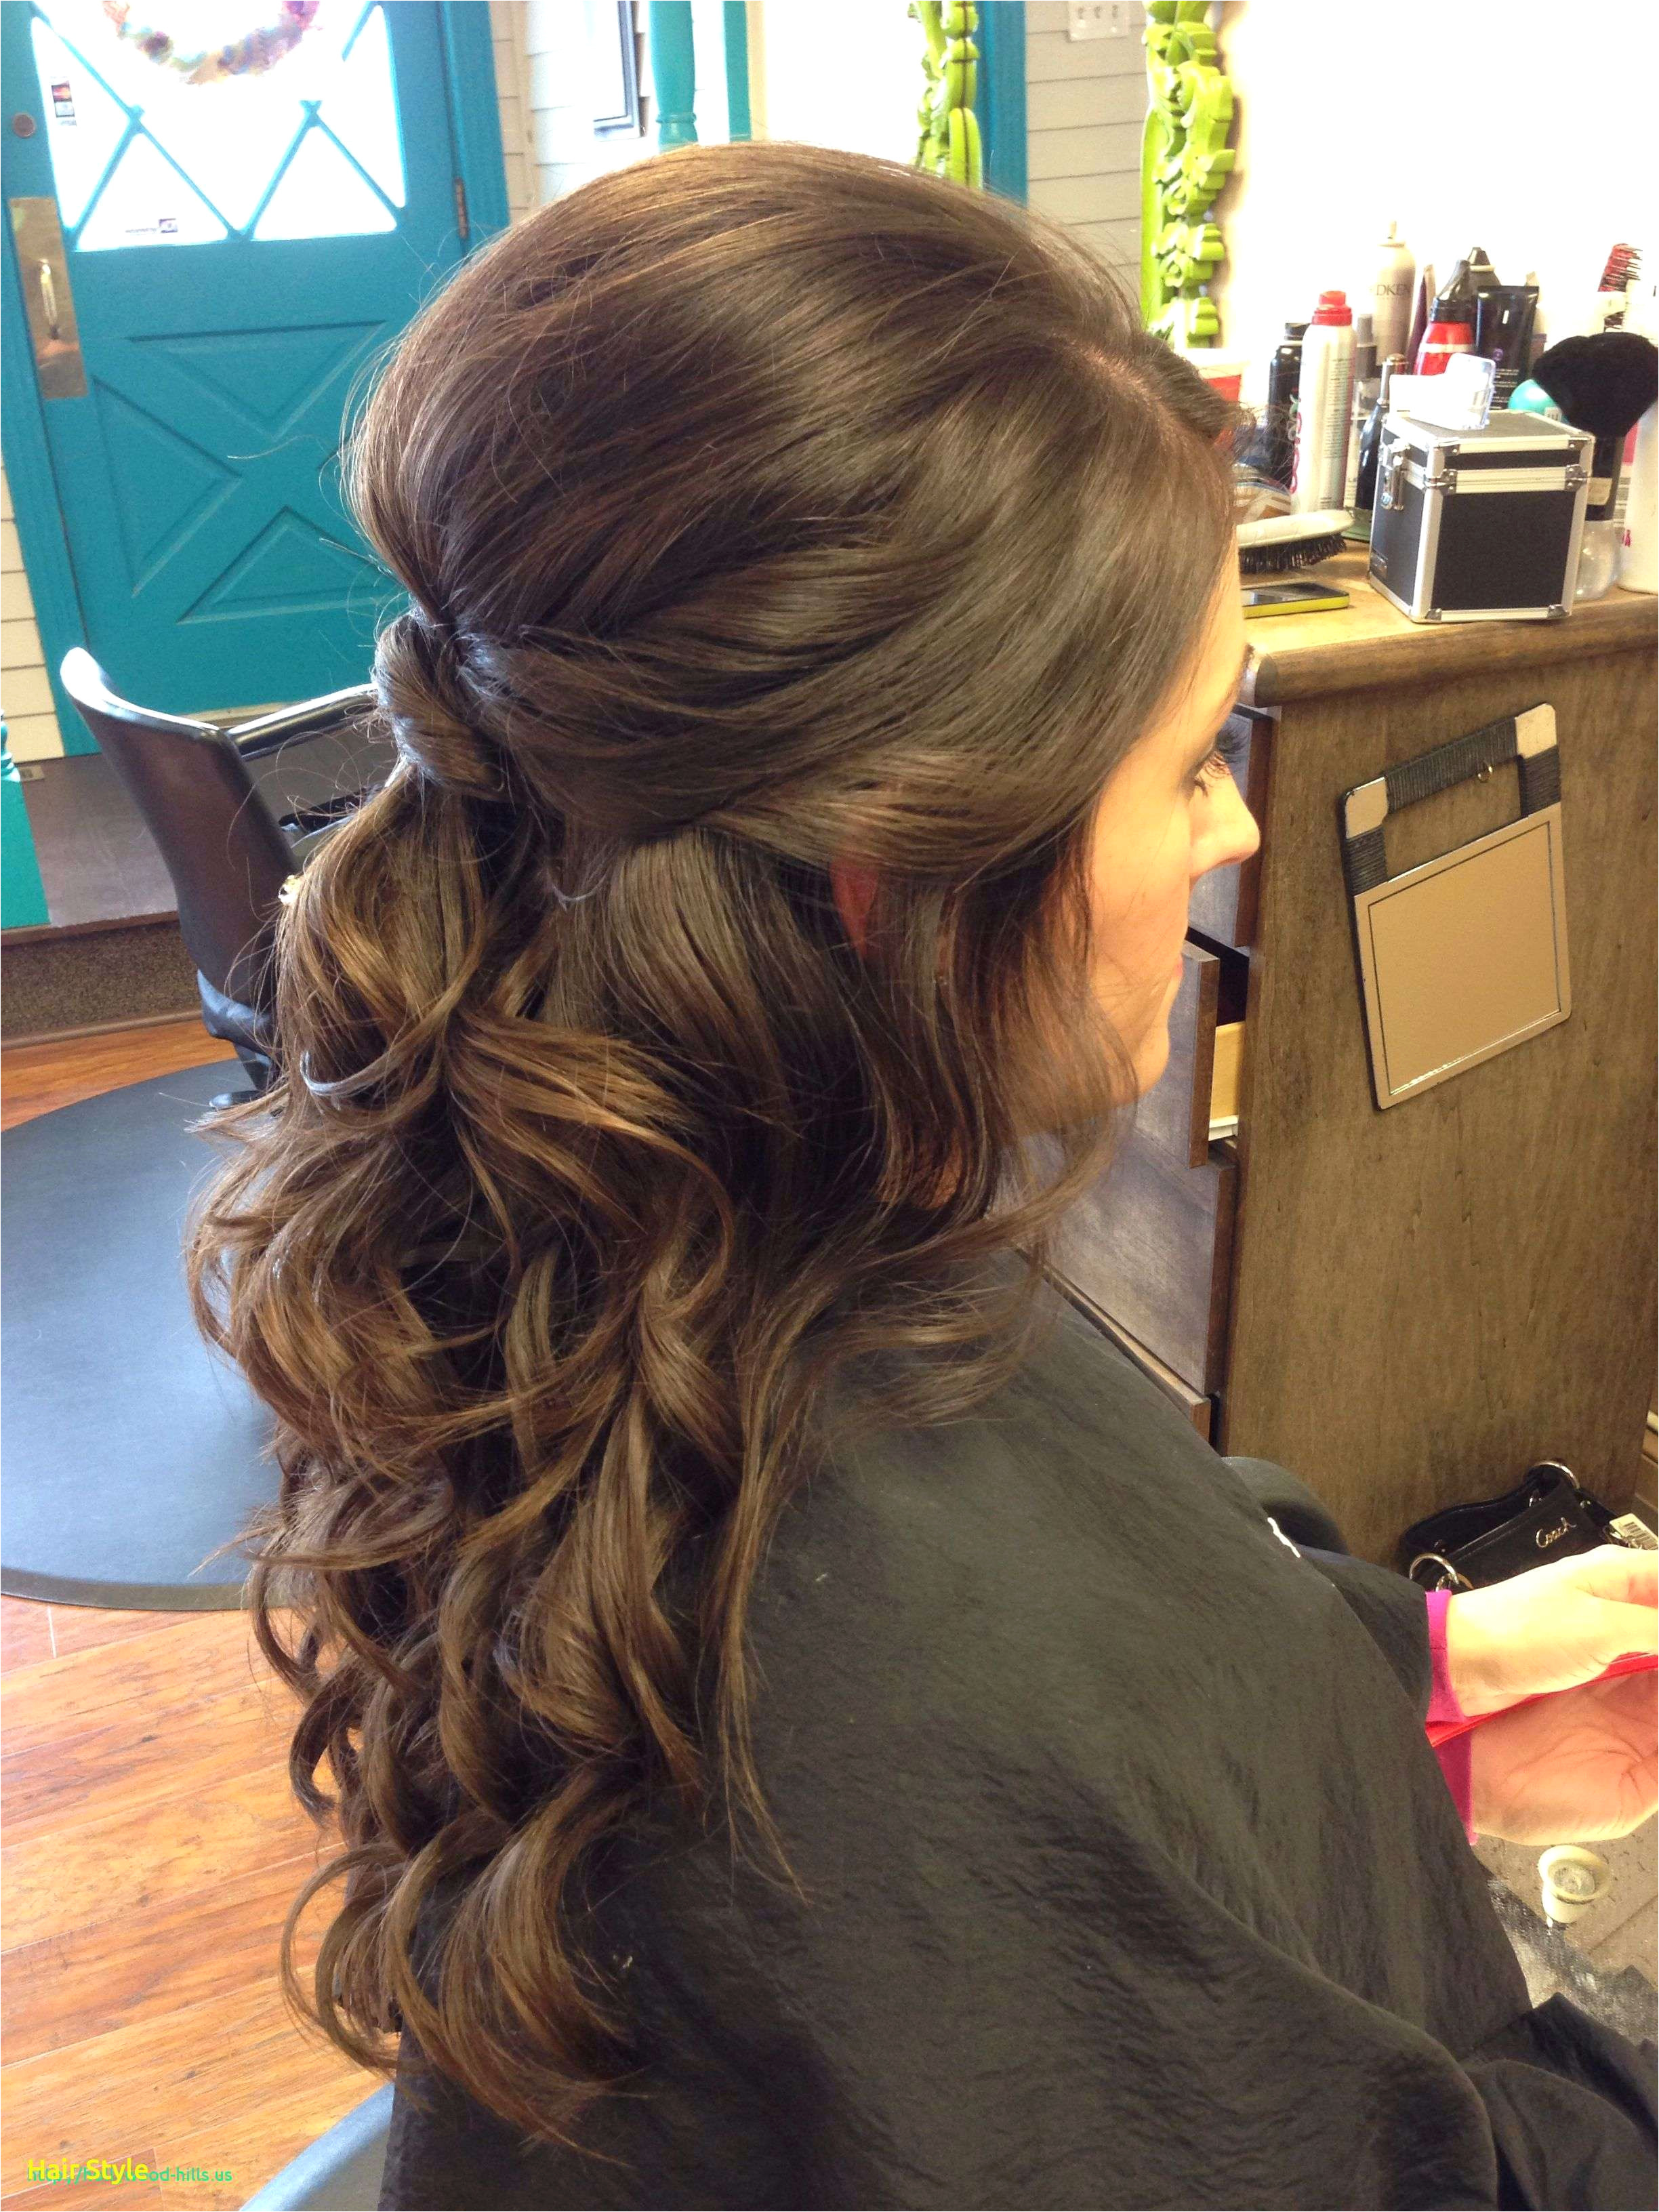 Prom Hairstyles Half Up with Braids 10 Wedding Hairstyles for Medium Length Hair Half Up Popular – SkyLine45